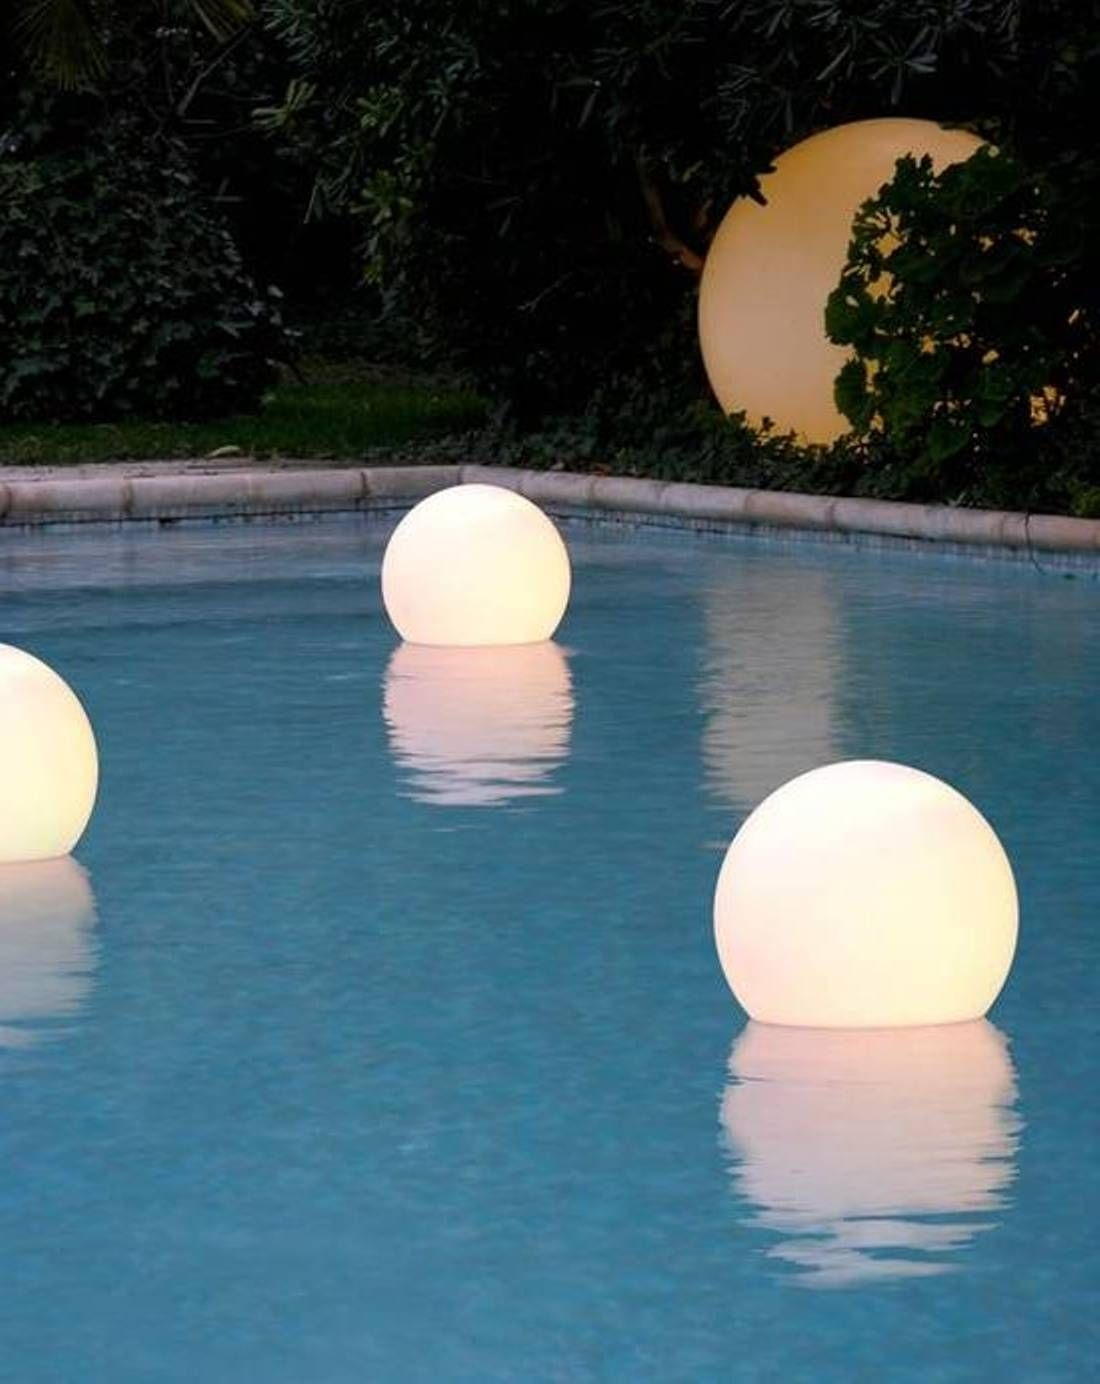 Floating Pool Lights For Inground Pools | Pool Ideas | Pinterest with regard to Outdoor Lanterns for Poolside (Image 4 of 20)